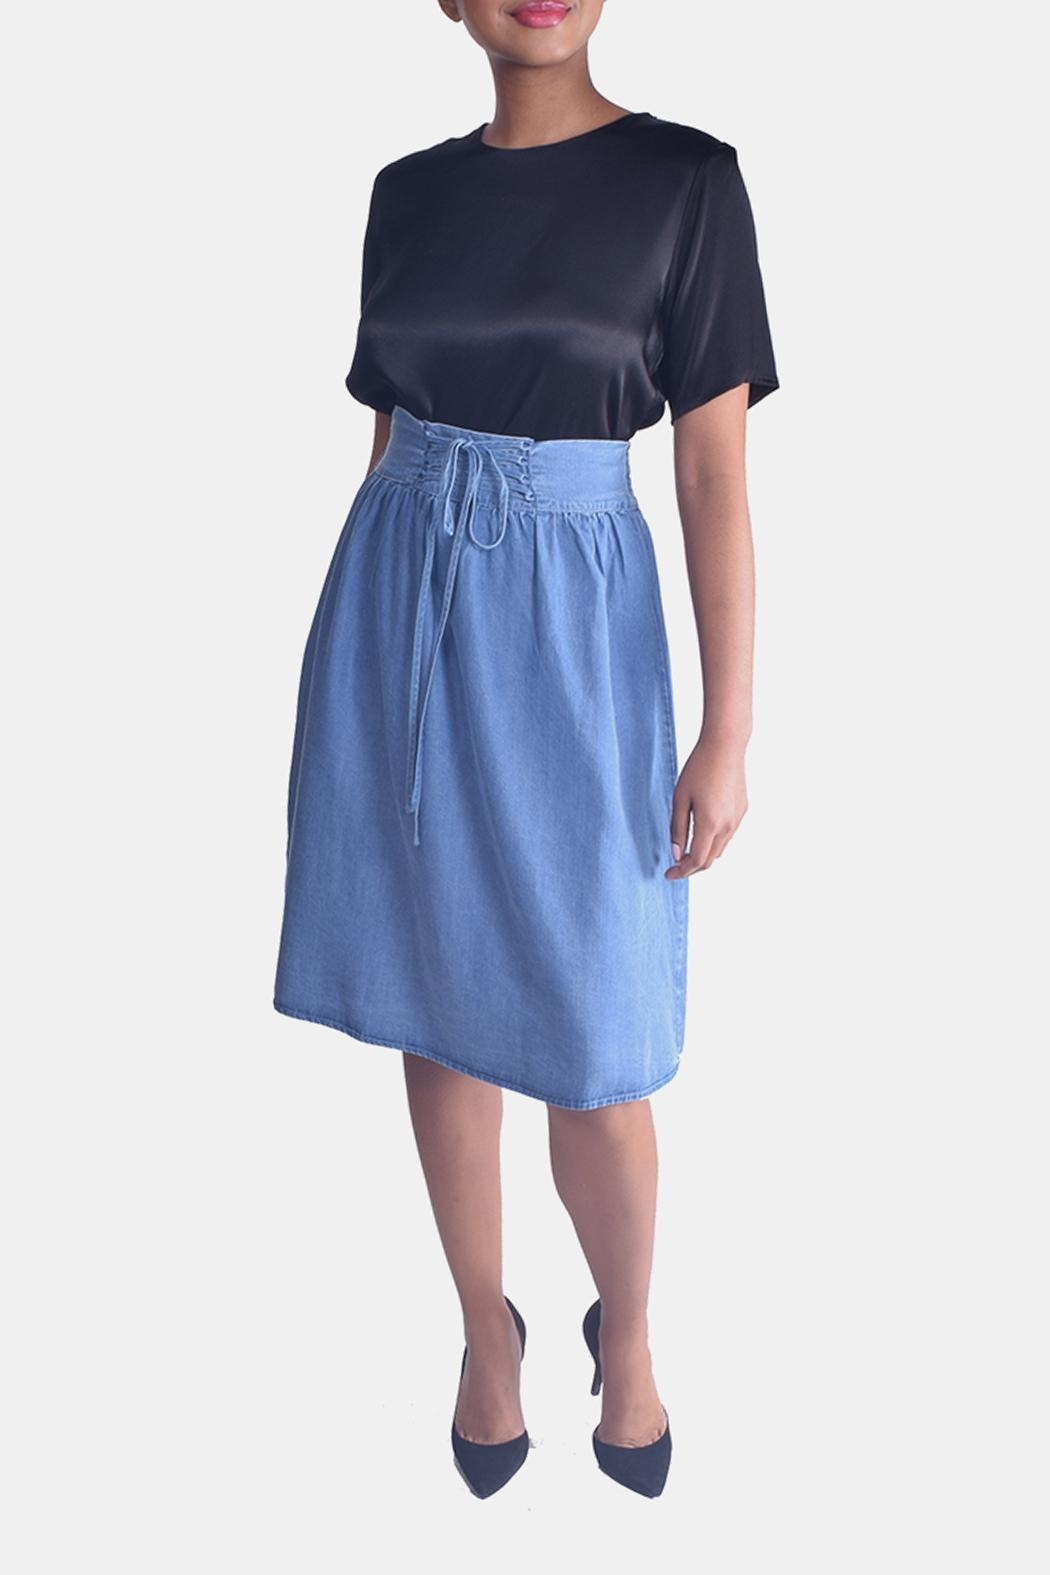 Skies Are Blue Corset Denim Skirt - Main Image